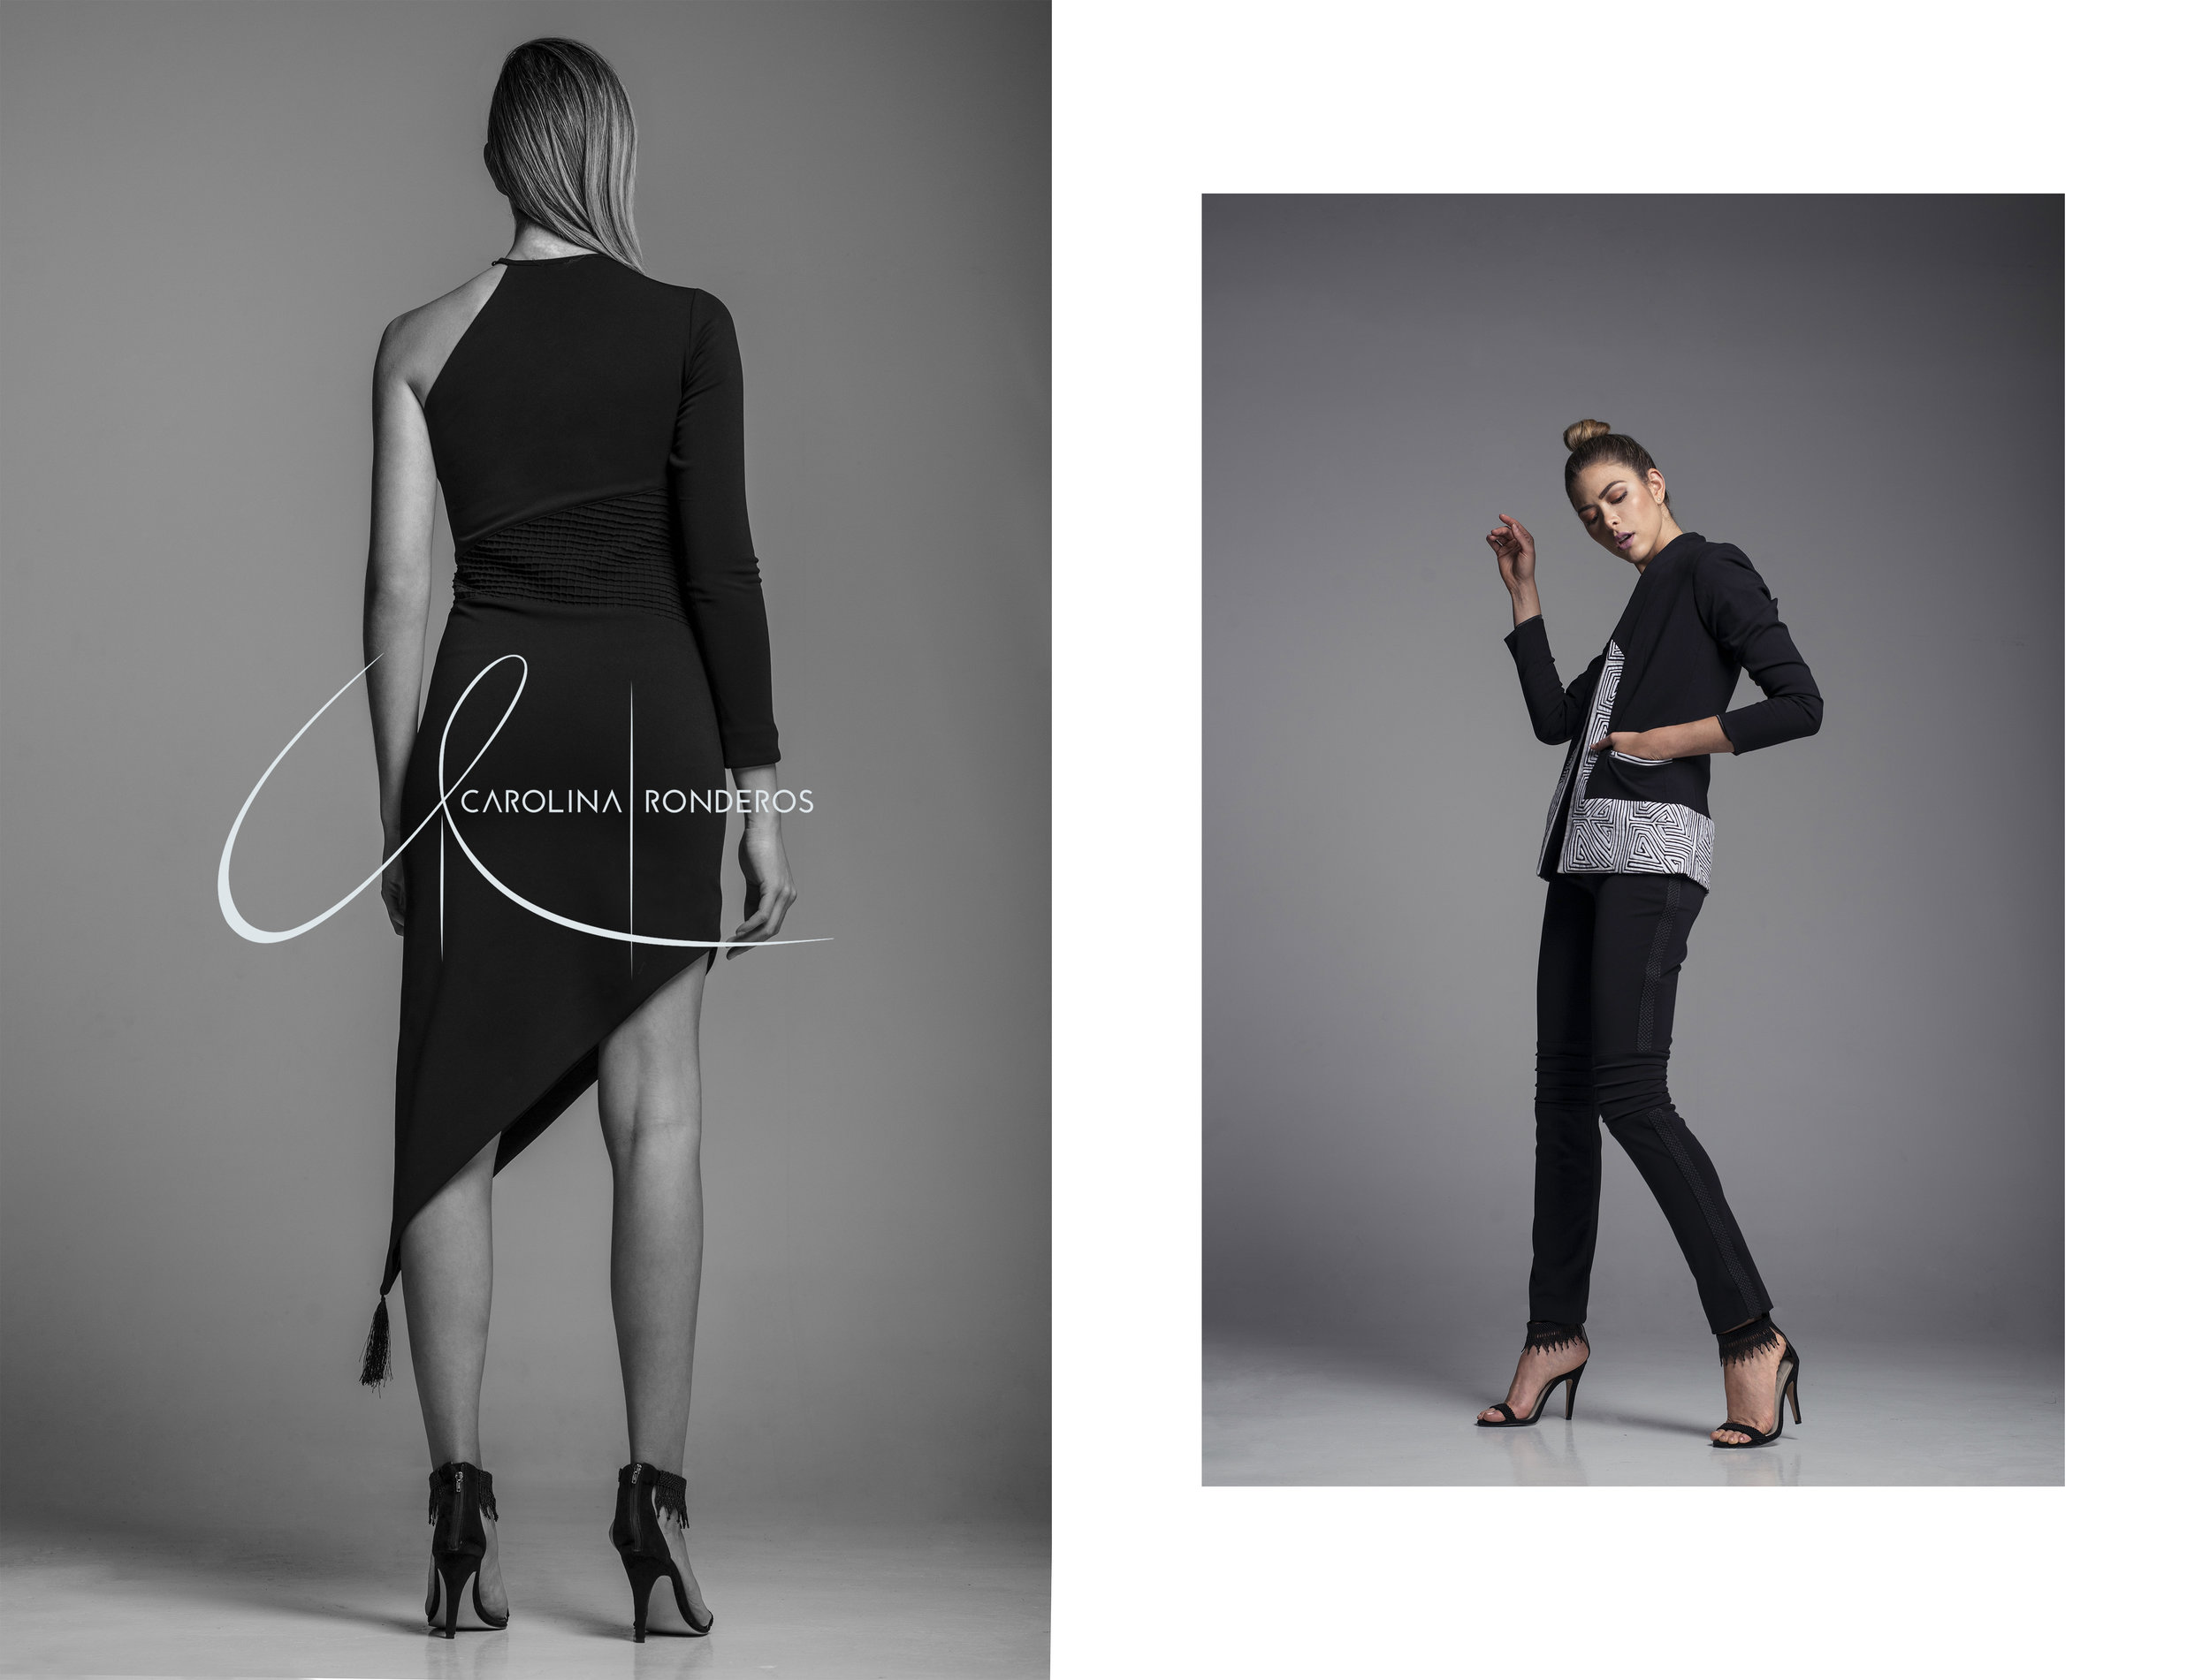 Carolina Ronderos - Look Book